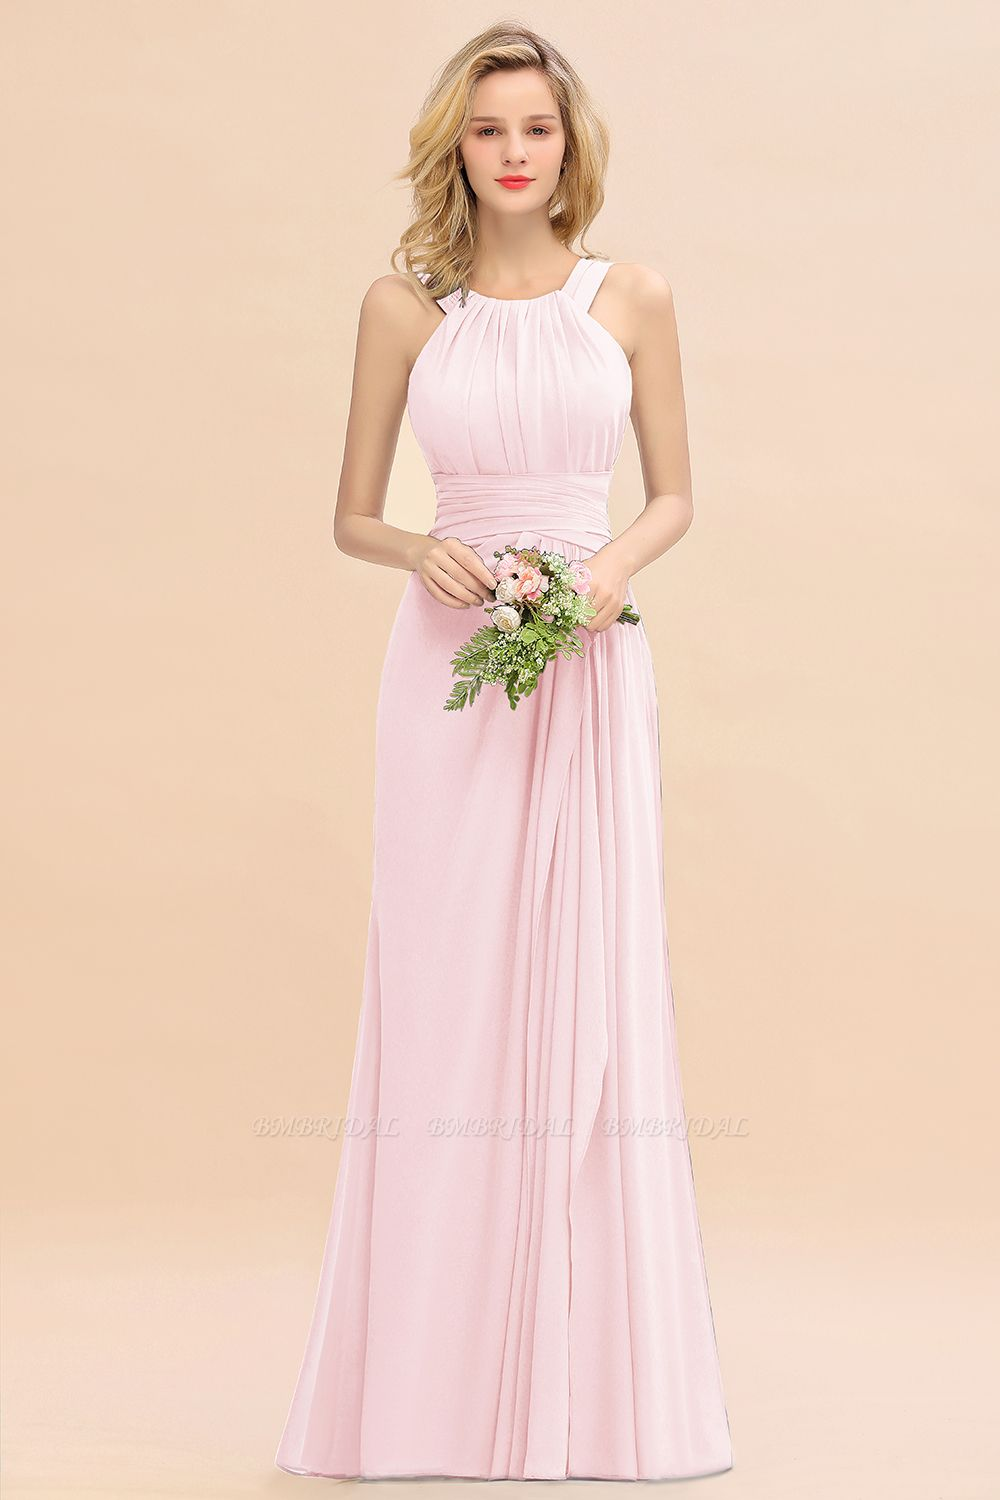 Elegant Round Neck Sleeveless Stormy Bridesmaid Dress with Ruffles